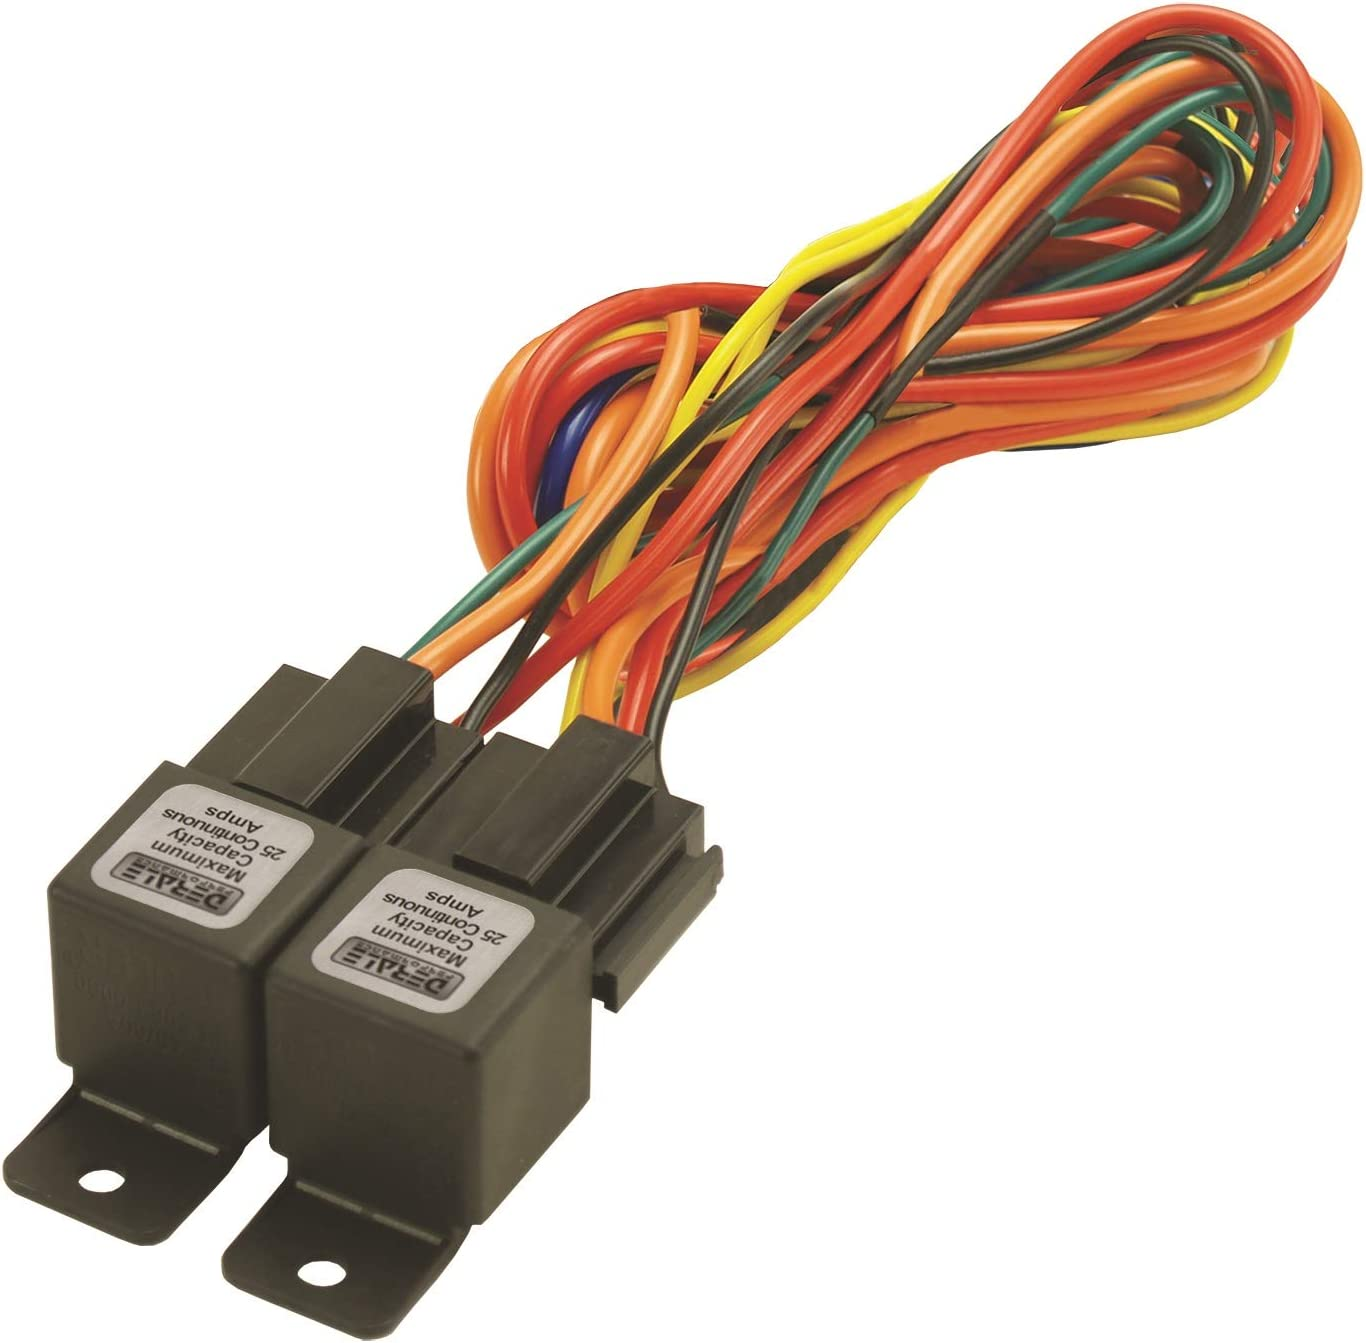 [QNCB_7524]  Amazon.com: Derale 16765 Electric Fan Dual Relay Wire Harness: Automotive | Derale Relay Wiring Diagram |  | Amazon.com